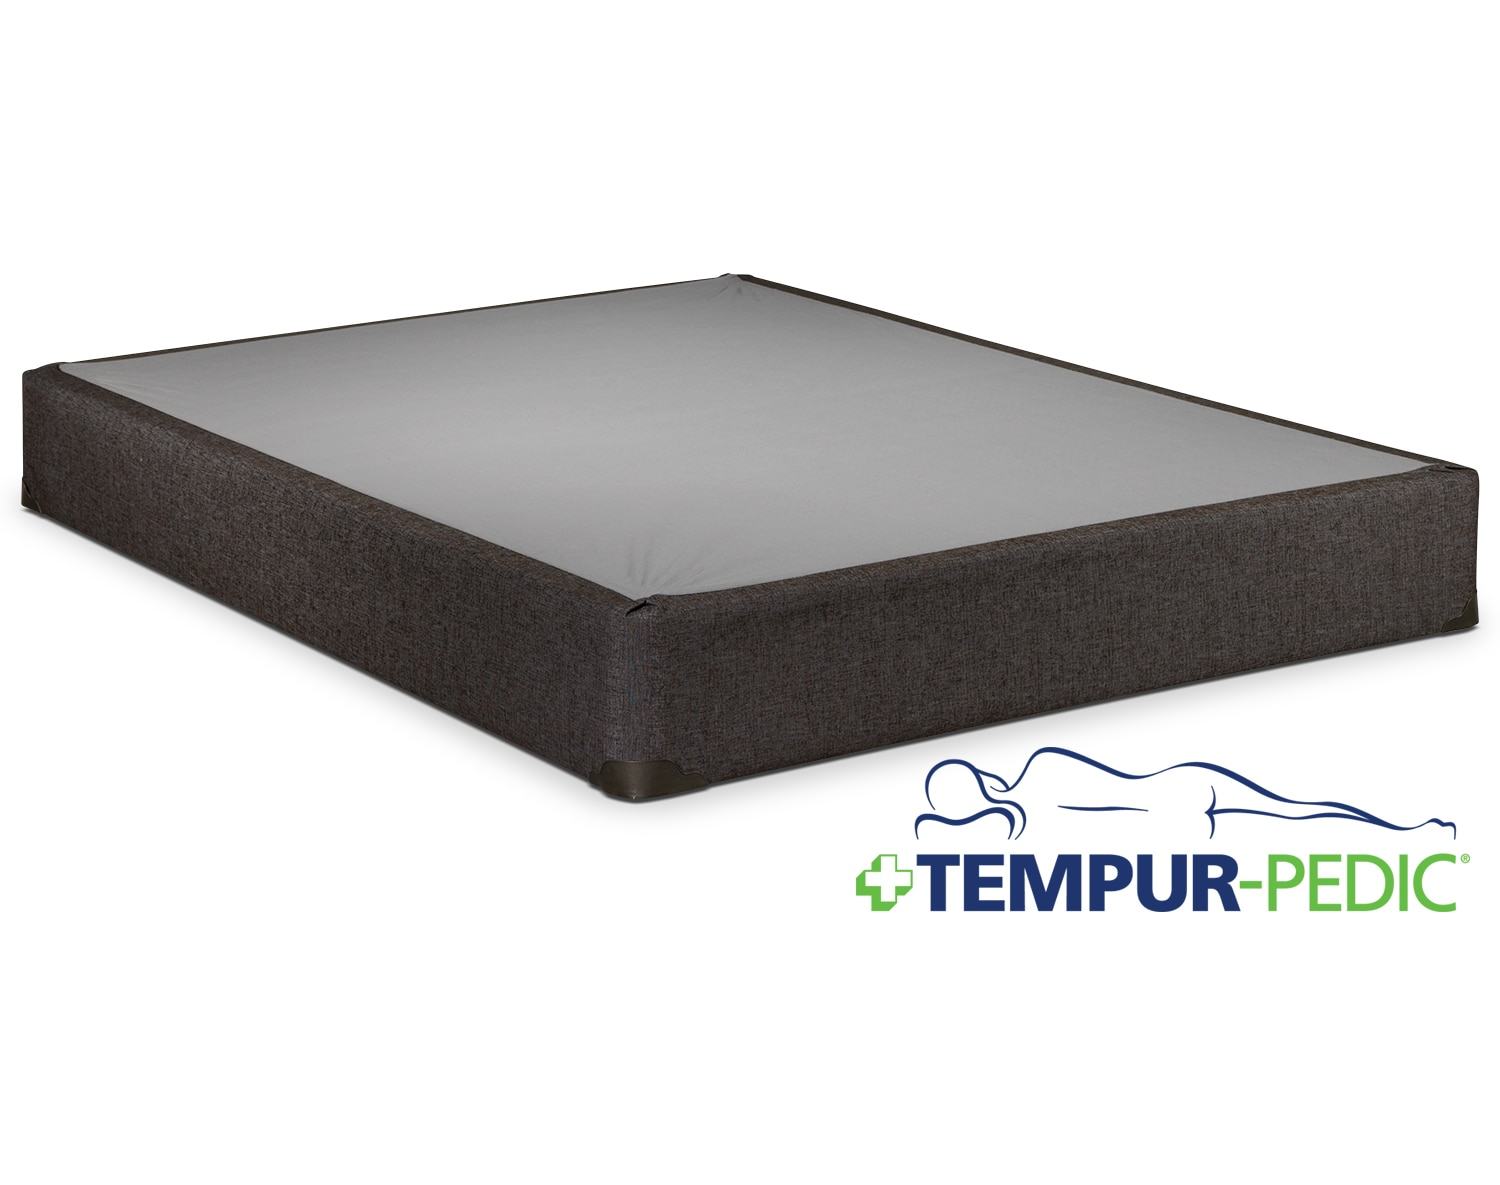 The Tempur-Pedic Reinforce Boxspring Collection